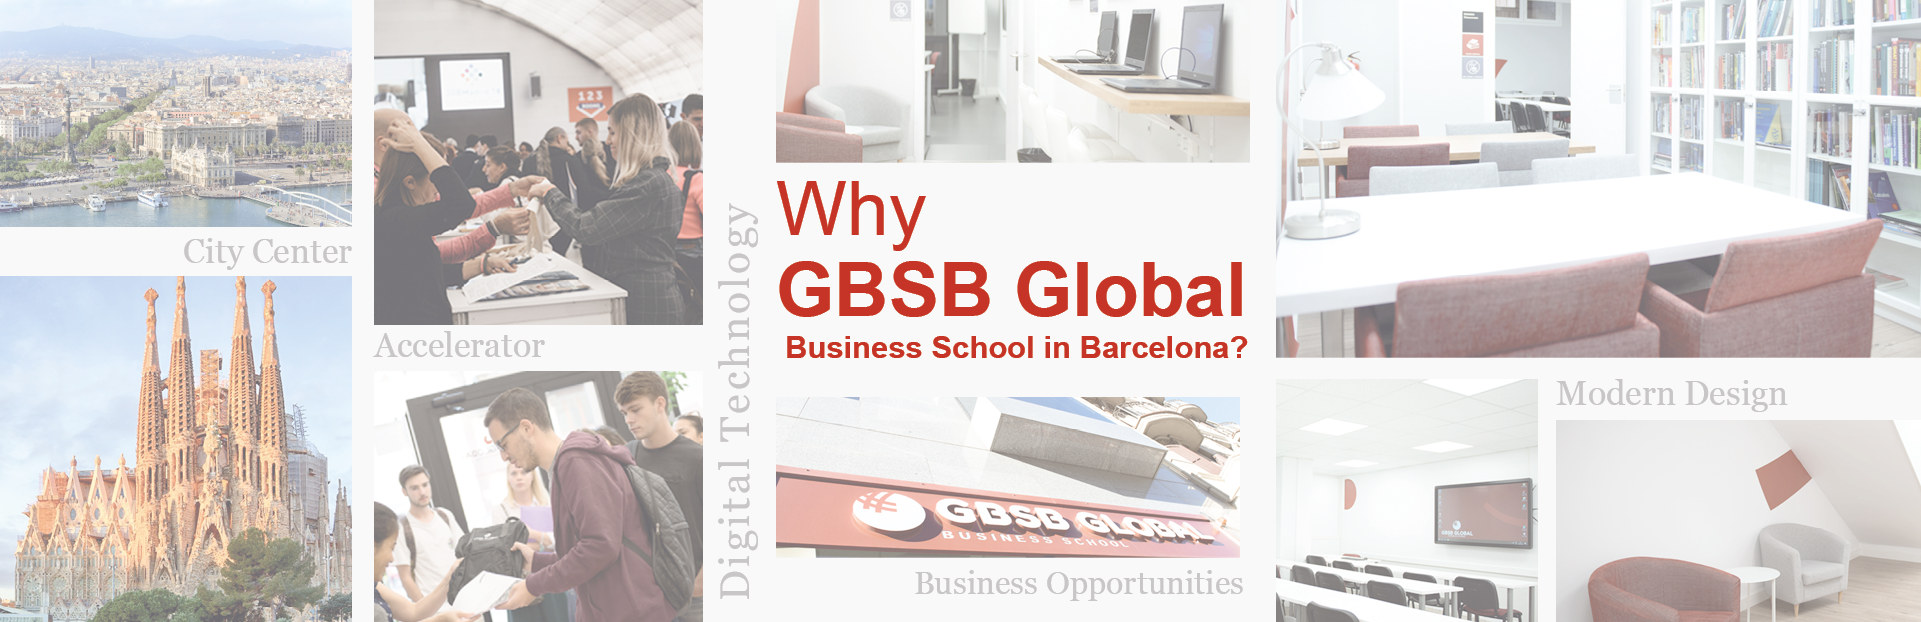 Why business school in Barcelona?